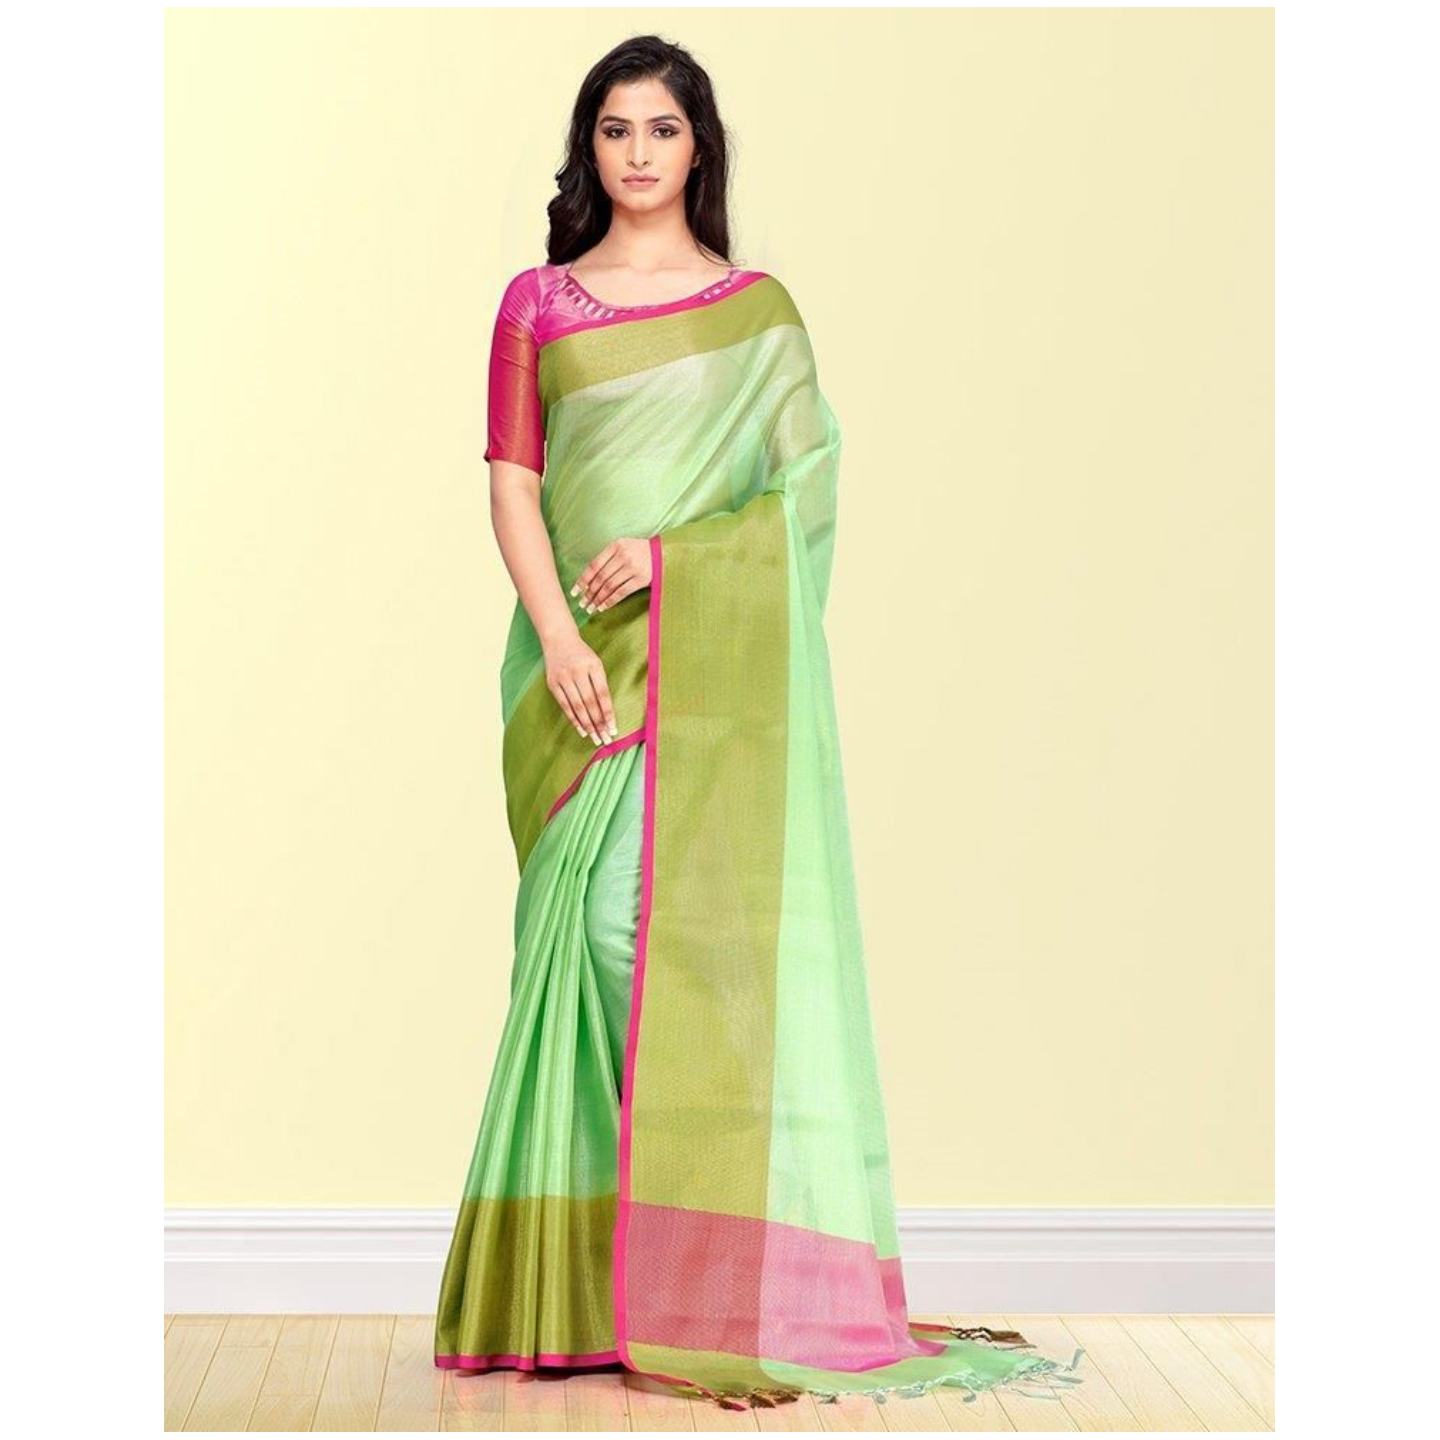 Affordable Cotton Blend Solid With Satin Border Saree